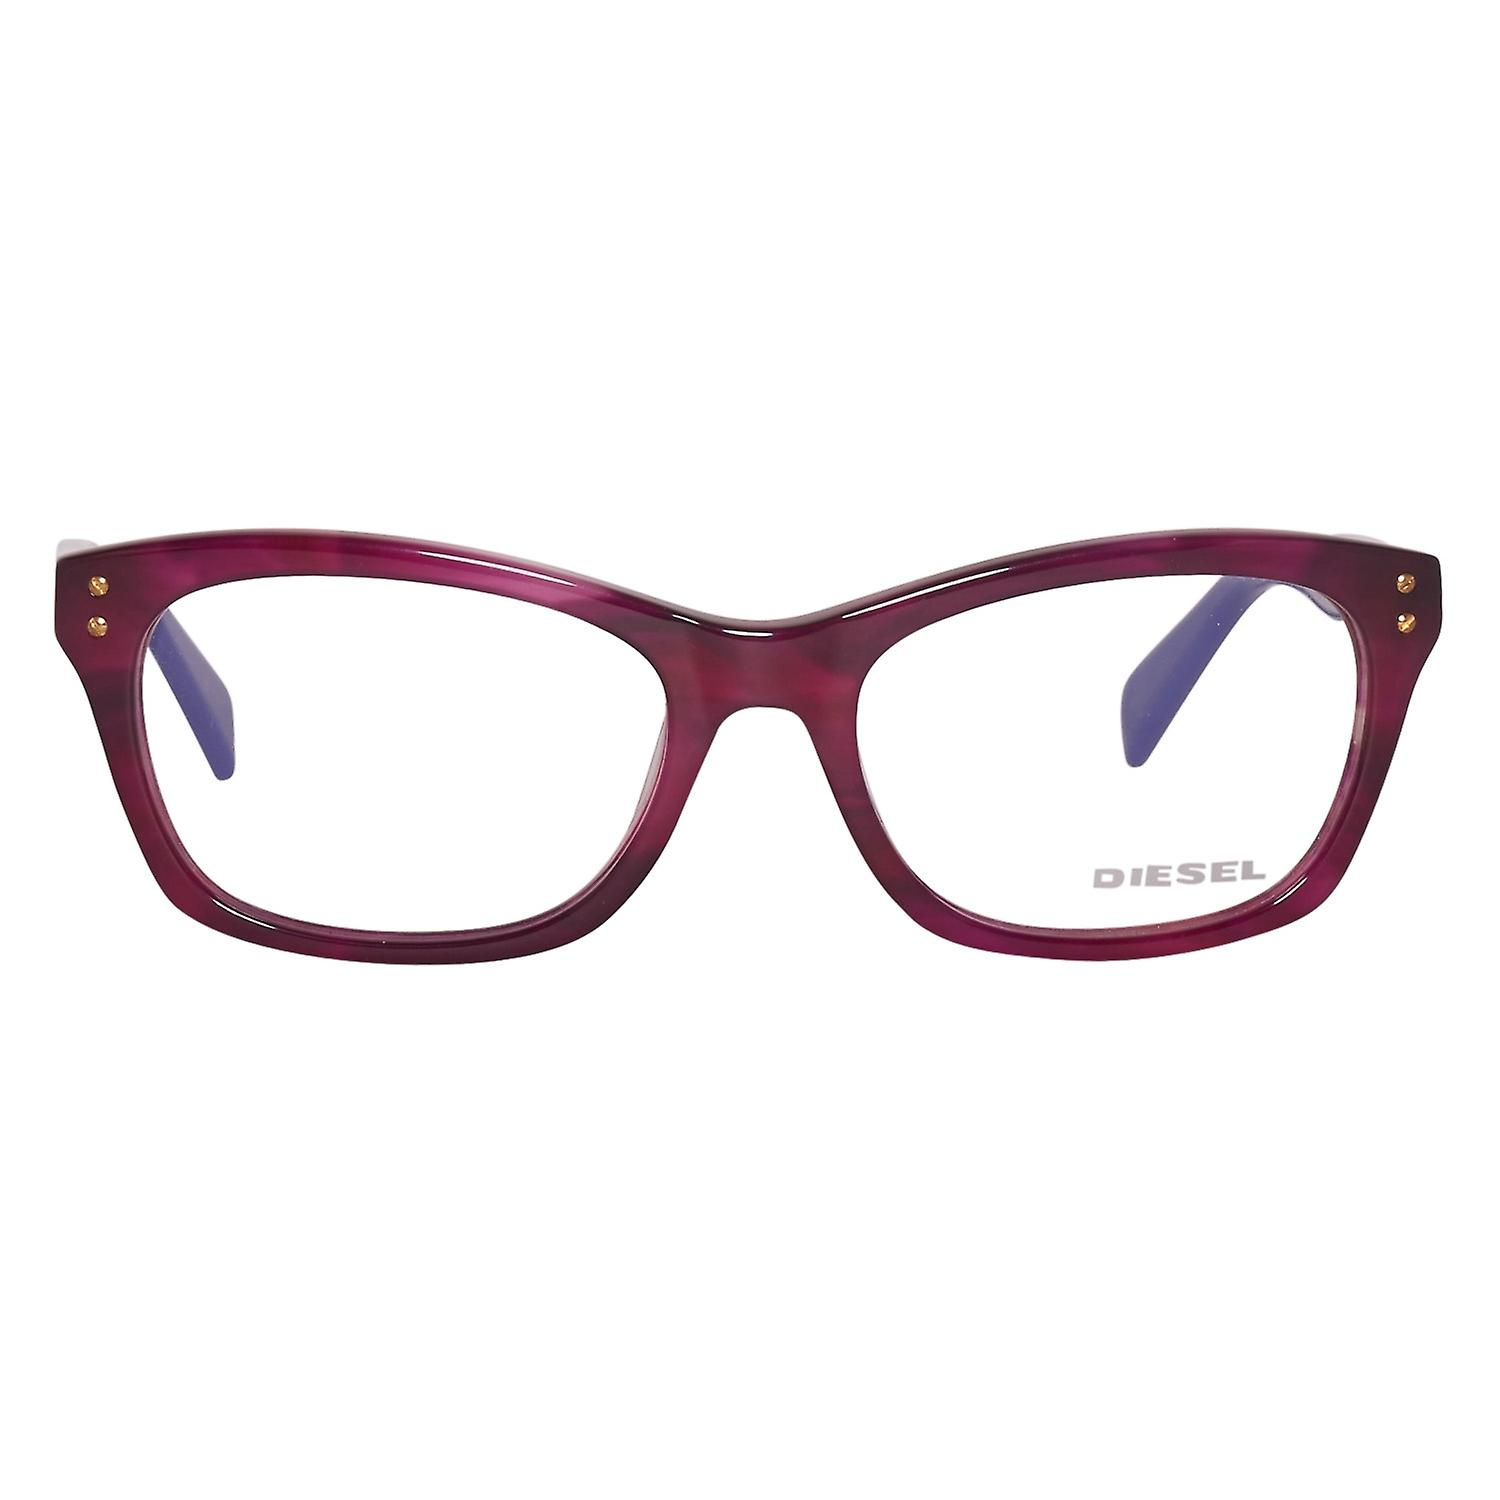 Diesel glasses ladies purple